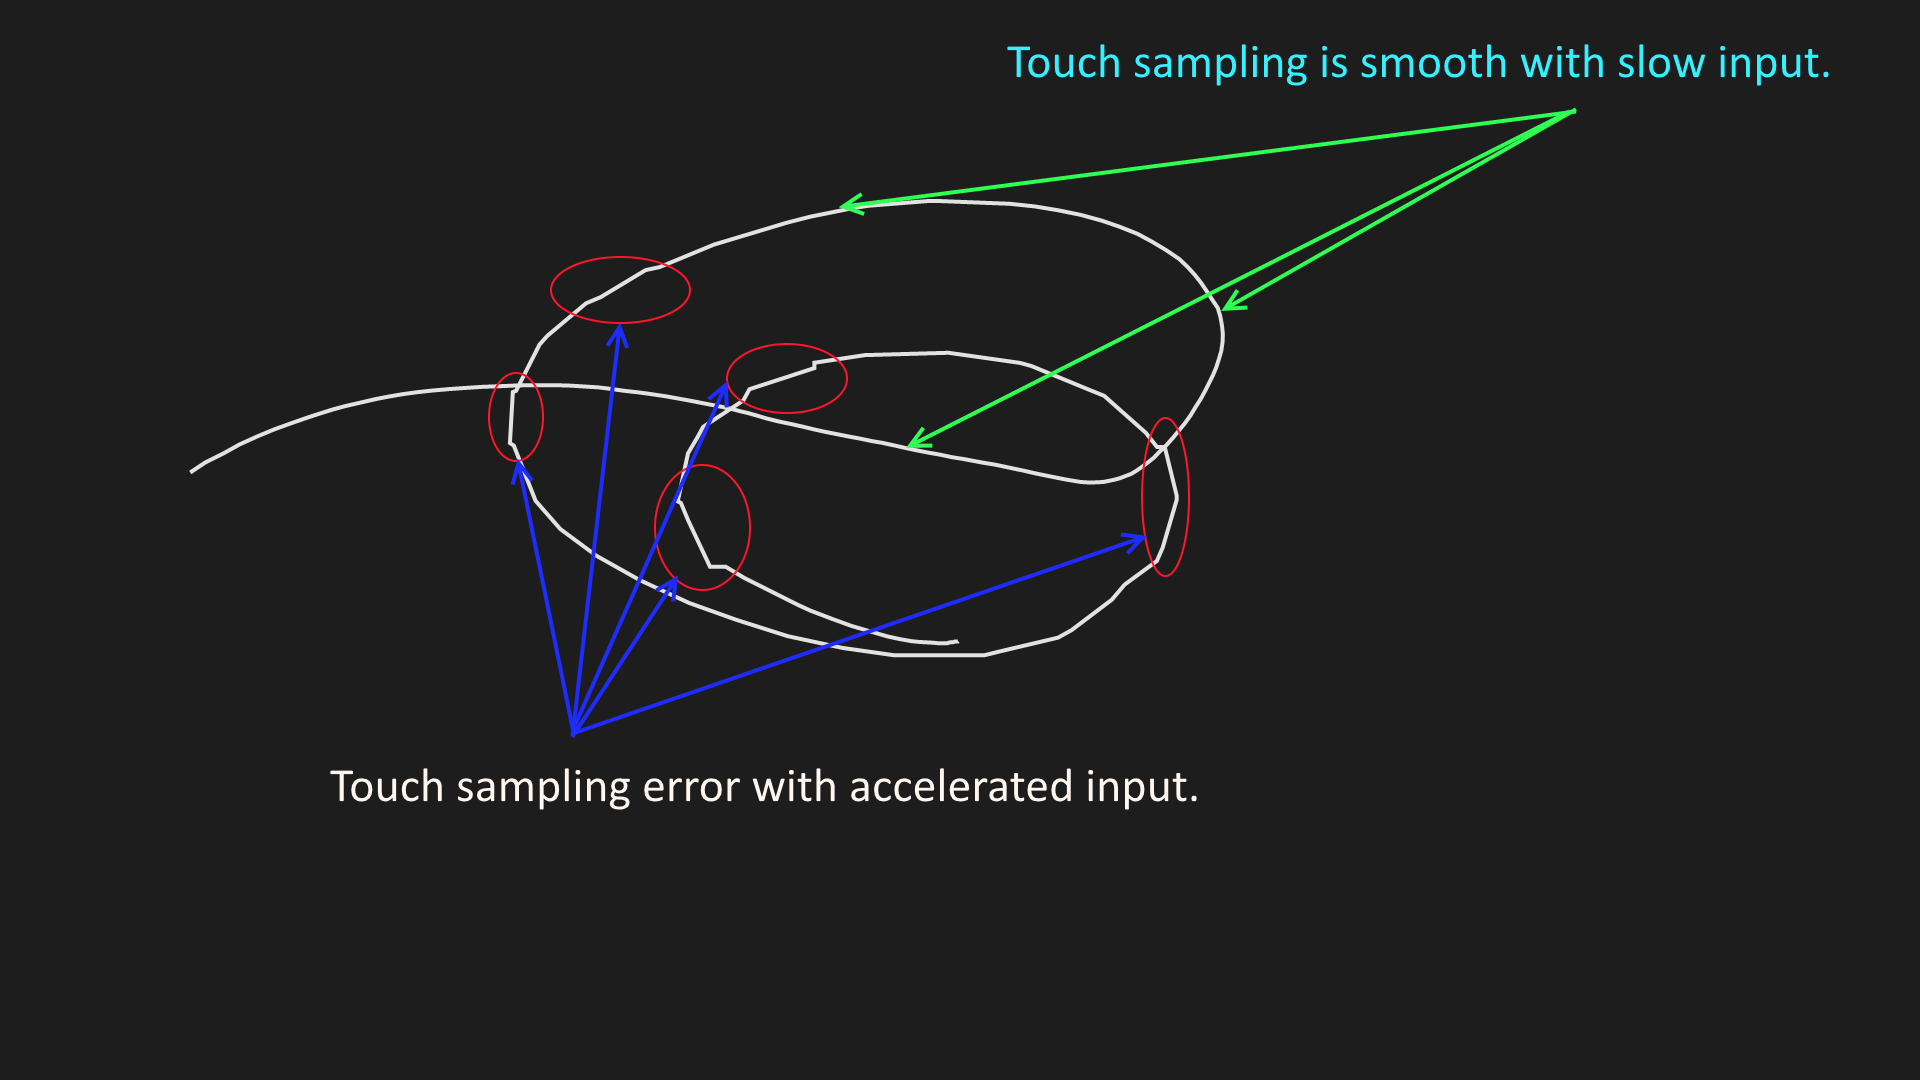 Touch sampling error with accerlerated input.